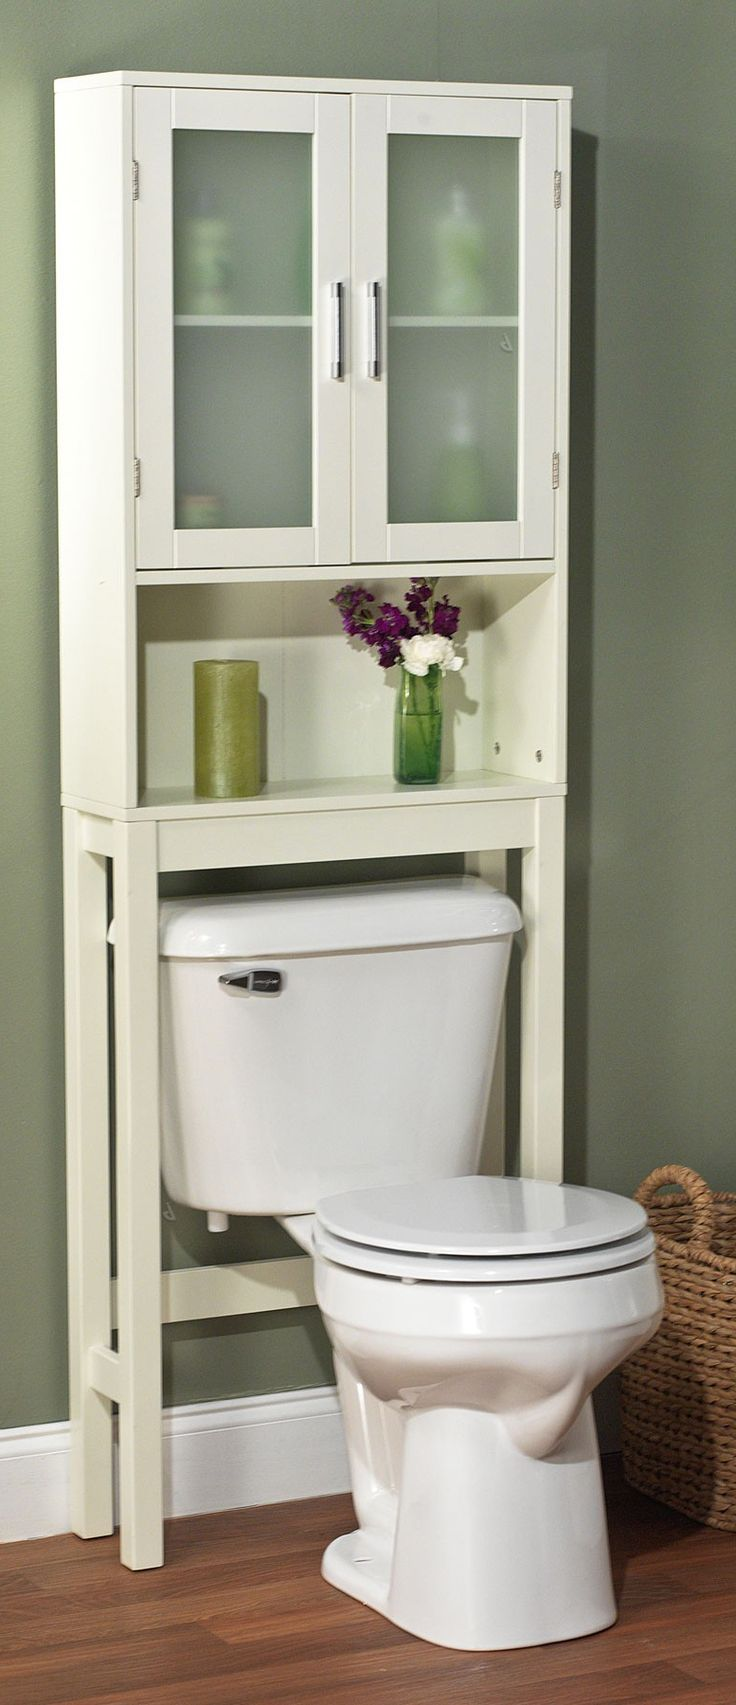 Diy bathroom ideas for small spaces - Bathroom Space Saver Over Toilet Cupboard Such A Good Idea For Small